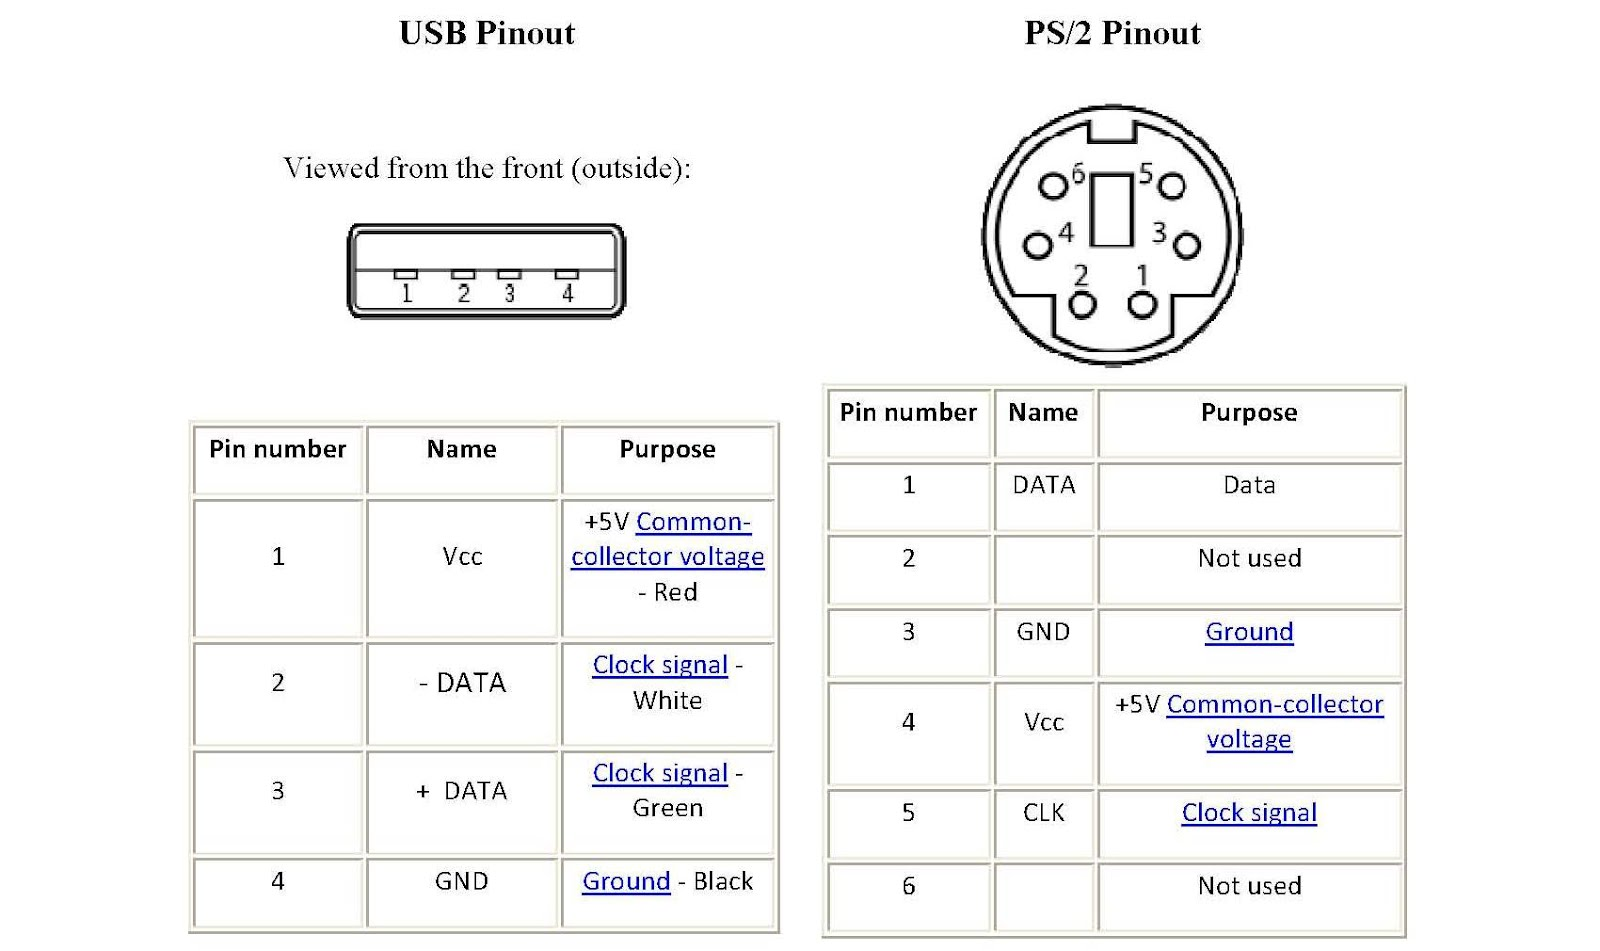 ps2 pinout diagram conversão teclado ps2 -> usb | zwame fórum ps2 mouse pinout diagram #2